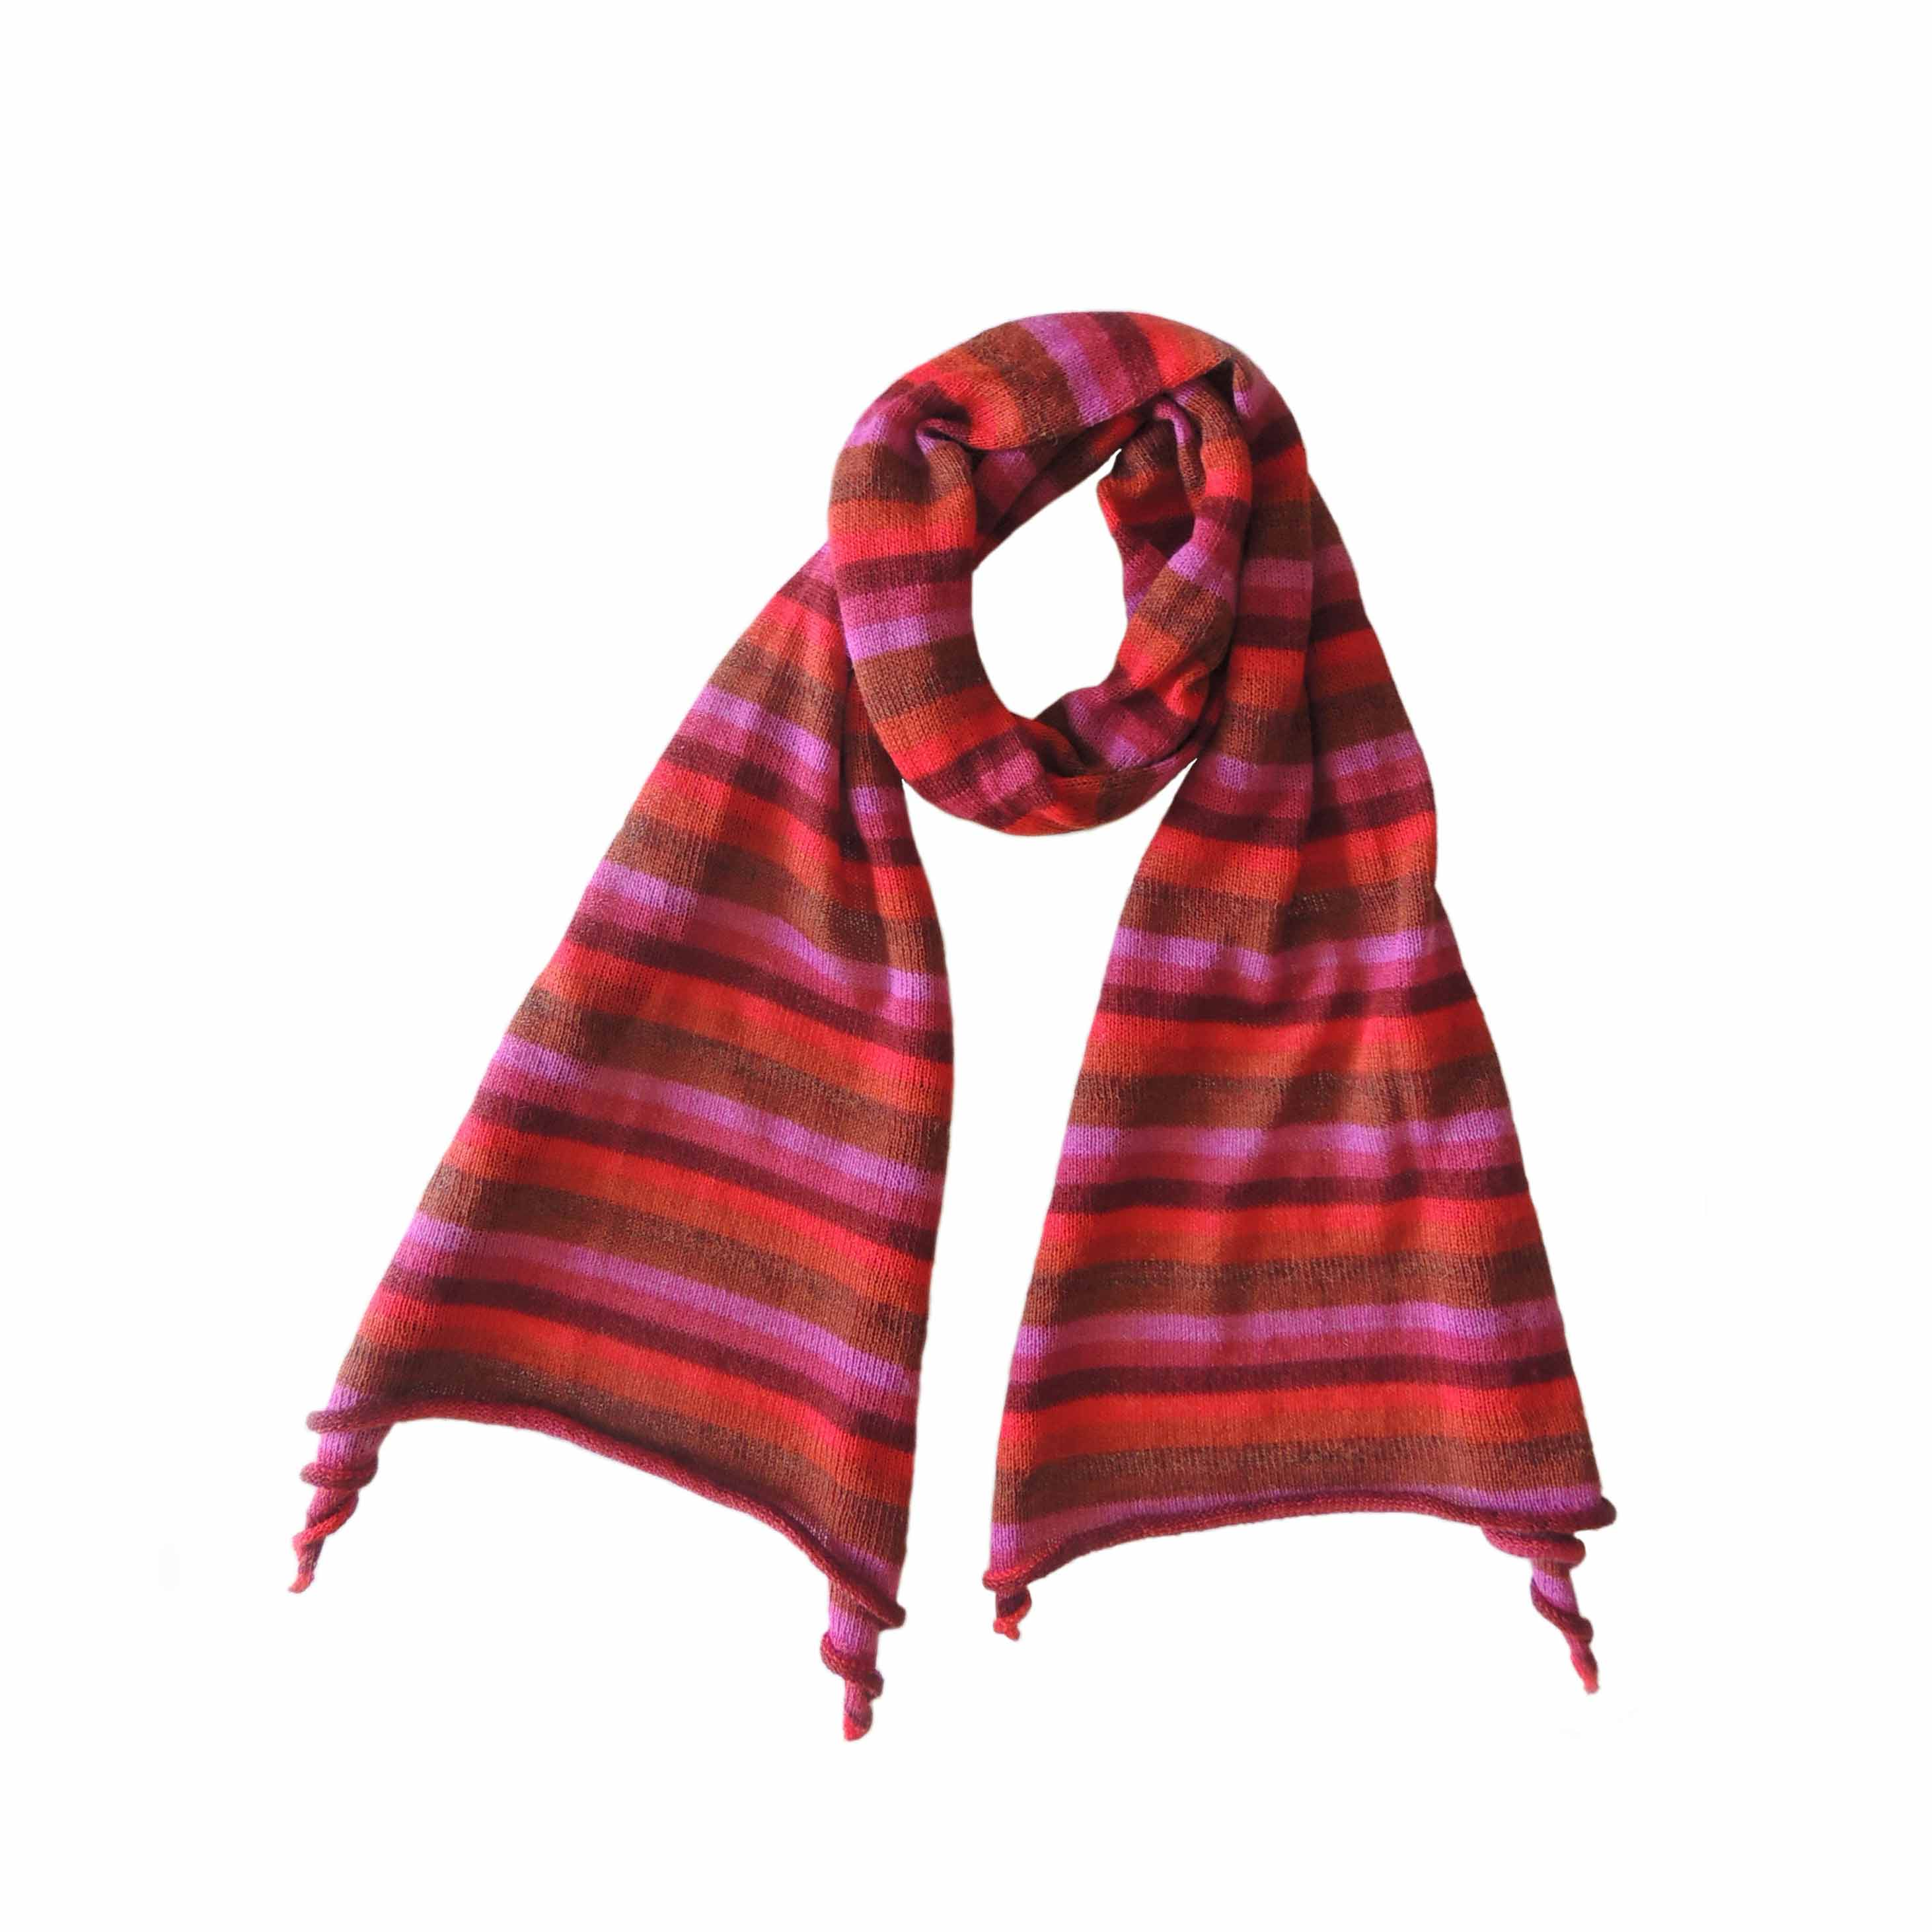 PopsFl Peru wholesal manufactor PFL knitwear scarf koose knitted in solid color and multi color striped, alpaca blend